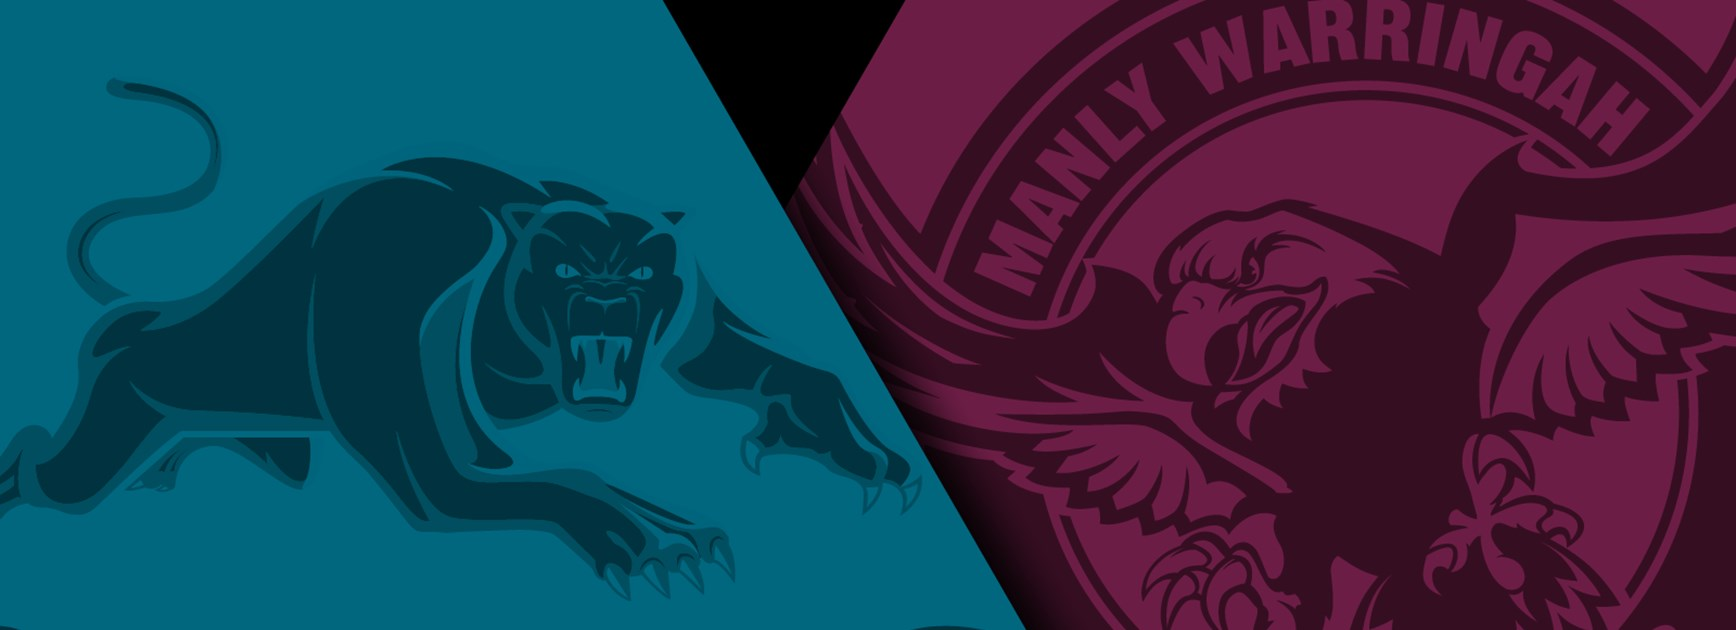 Panthers-Sea Eagles preview.